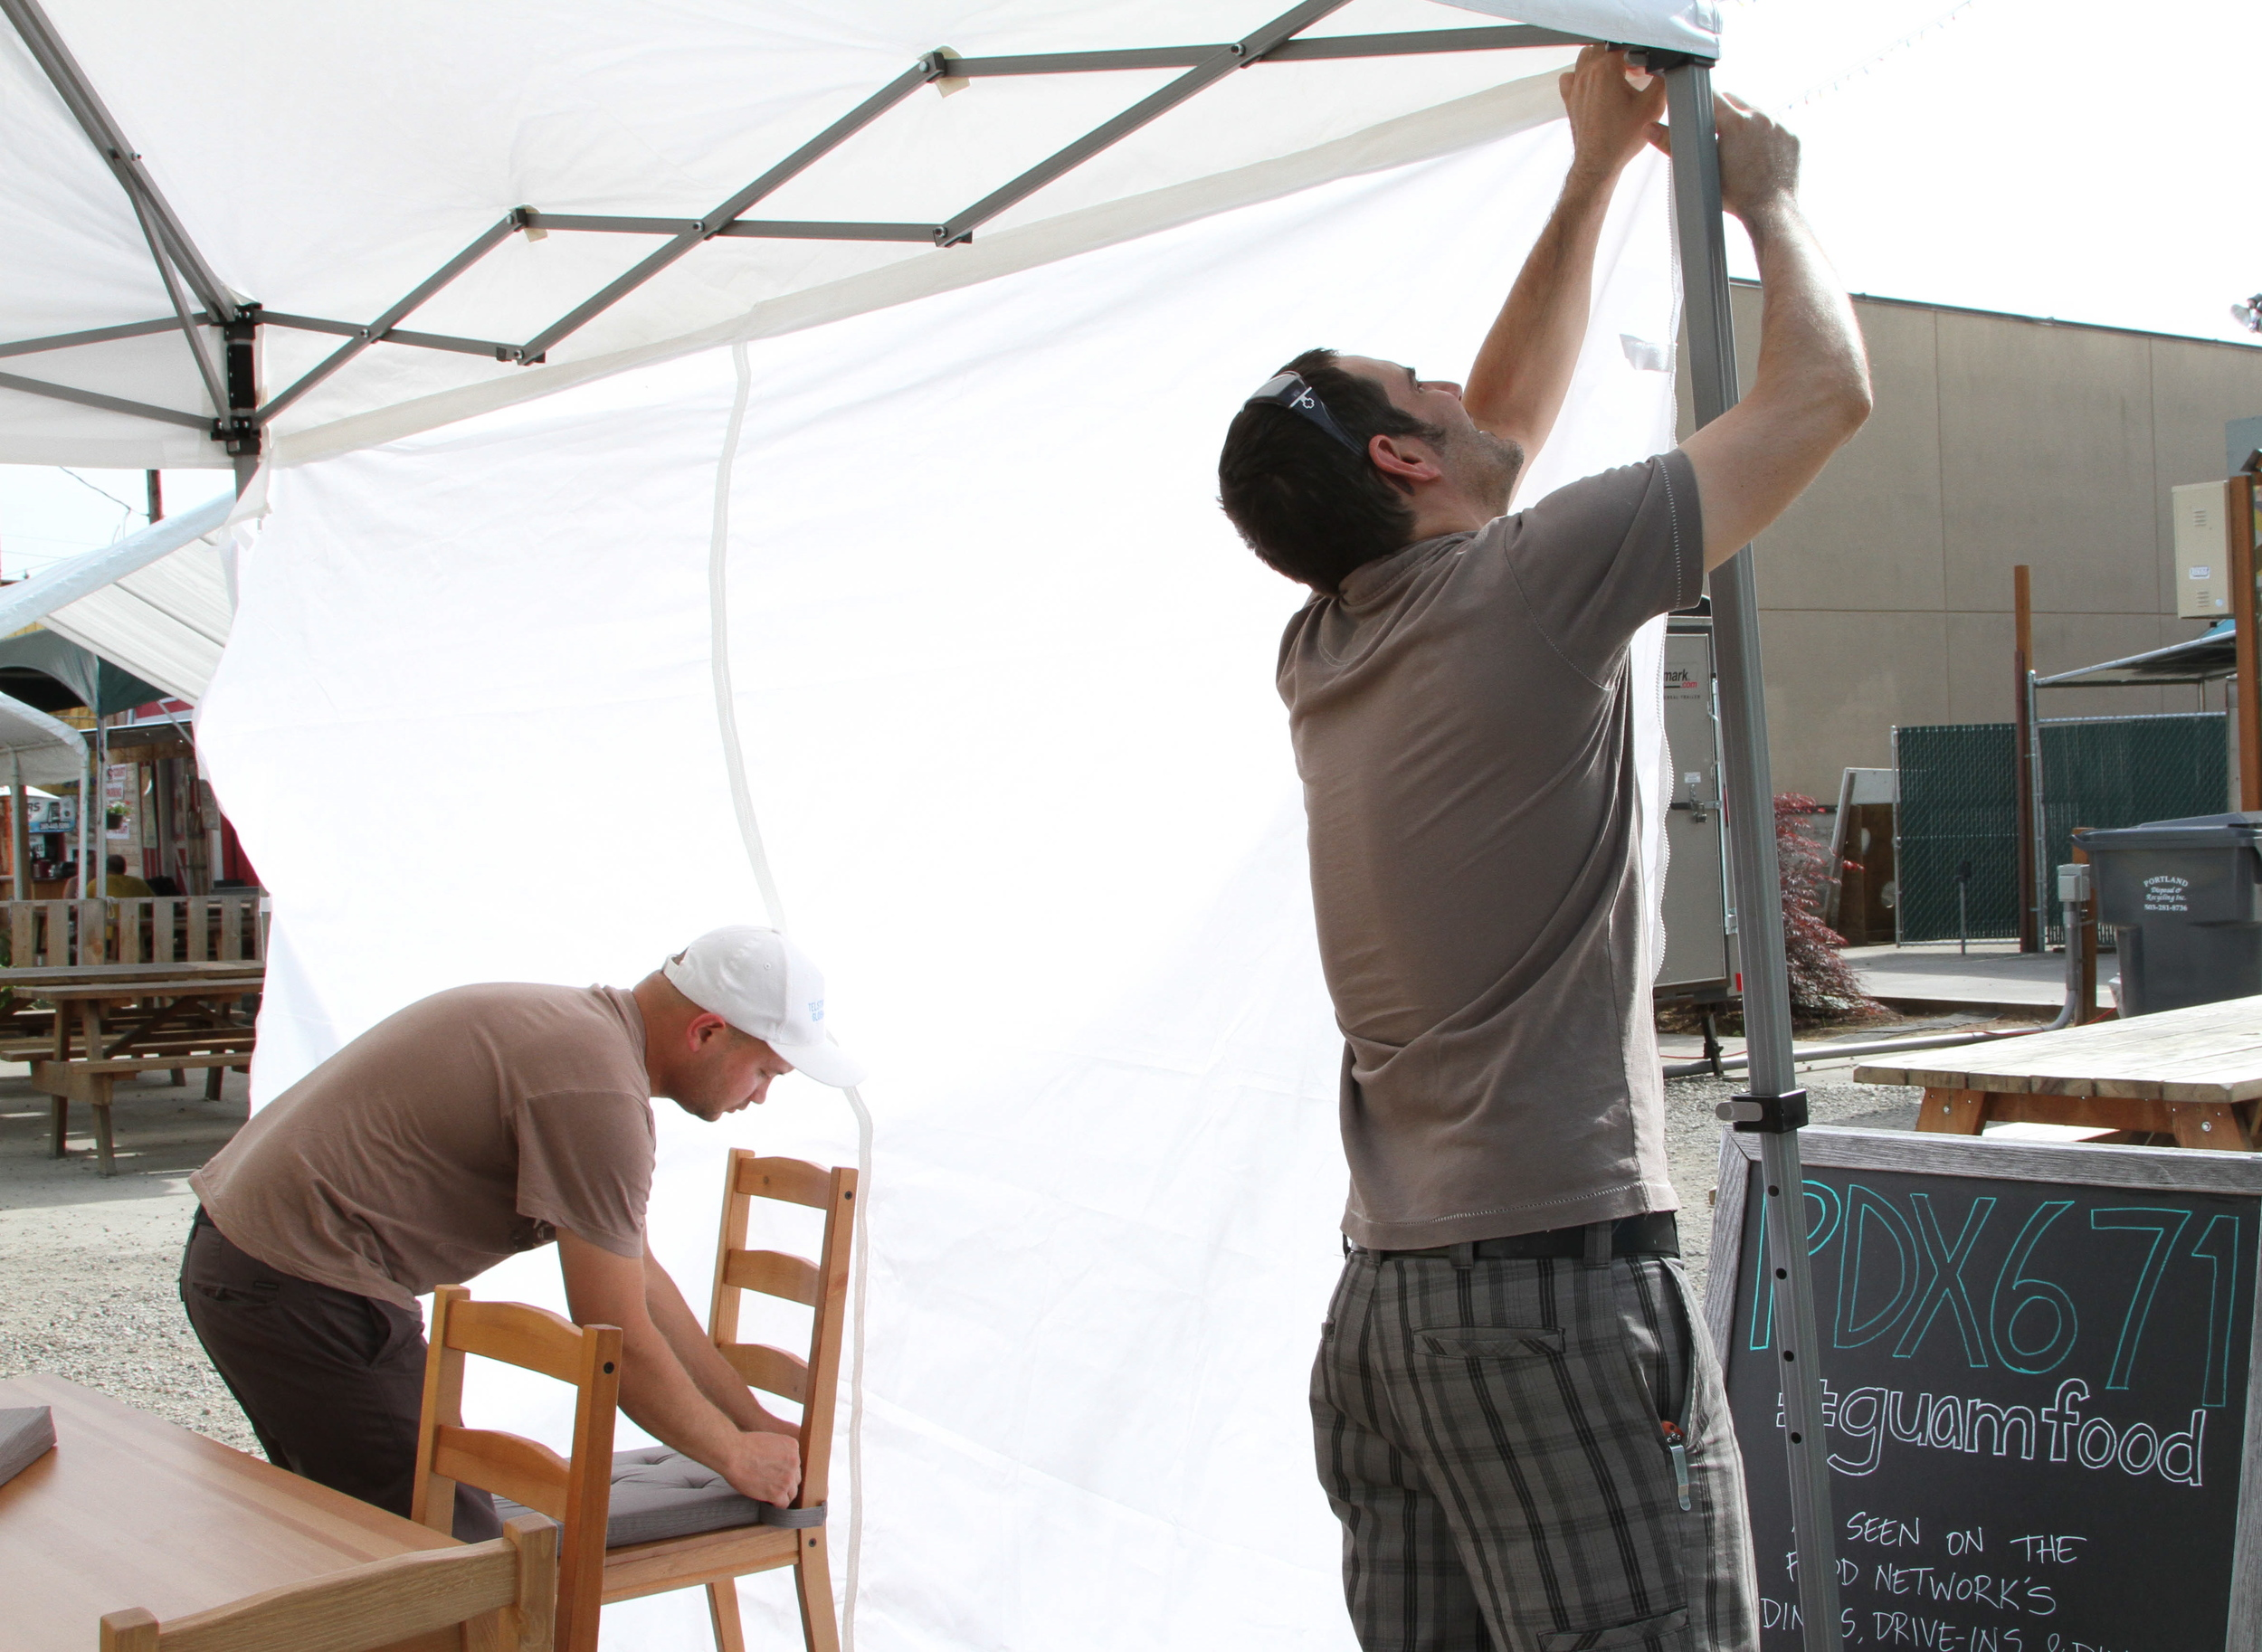 Keith setting up the chairs, while Carson puts the walls up onto the tent